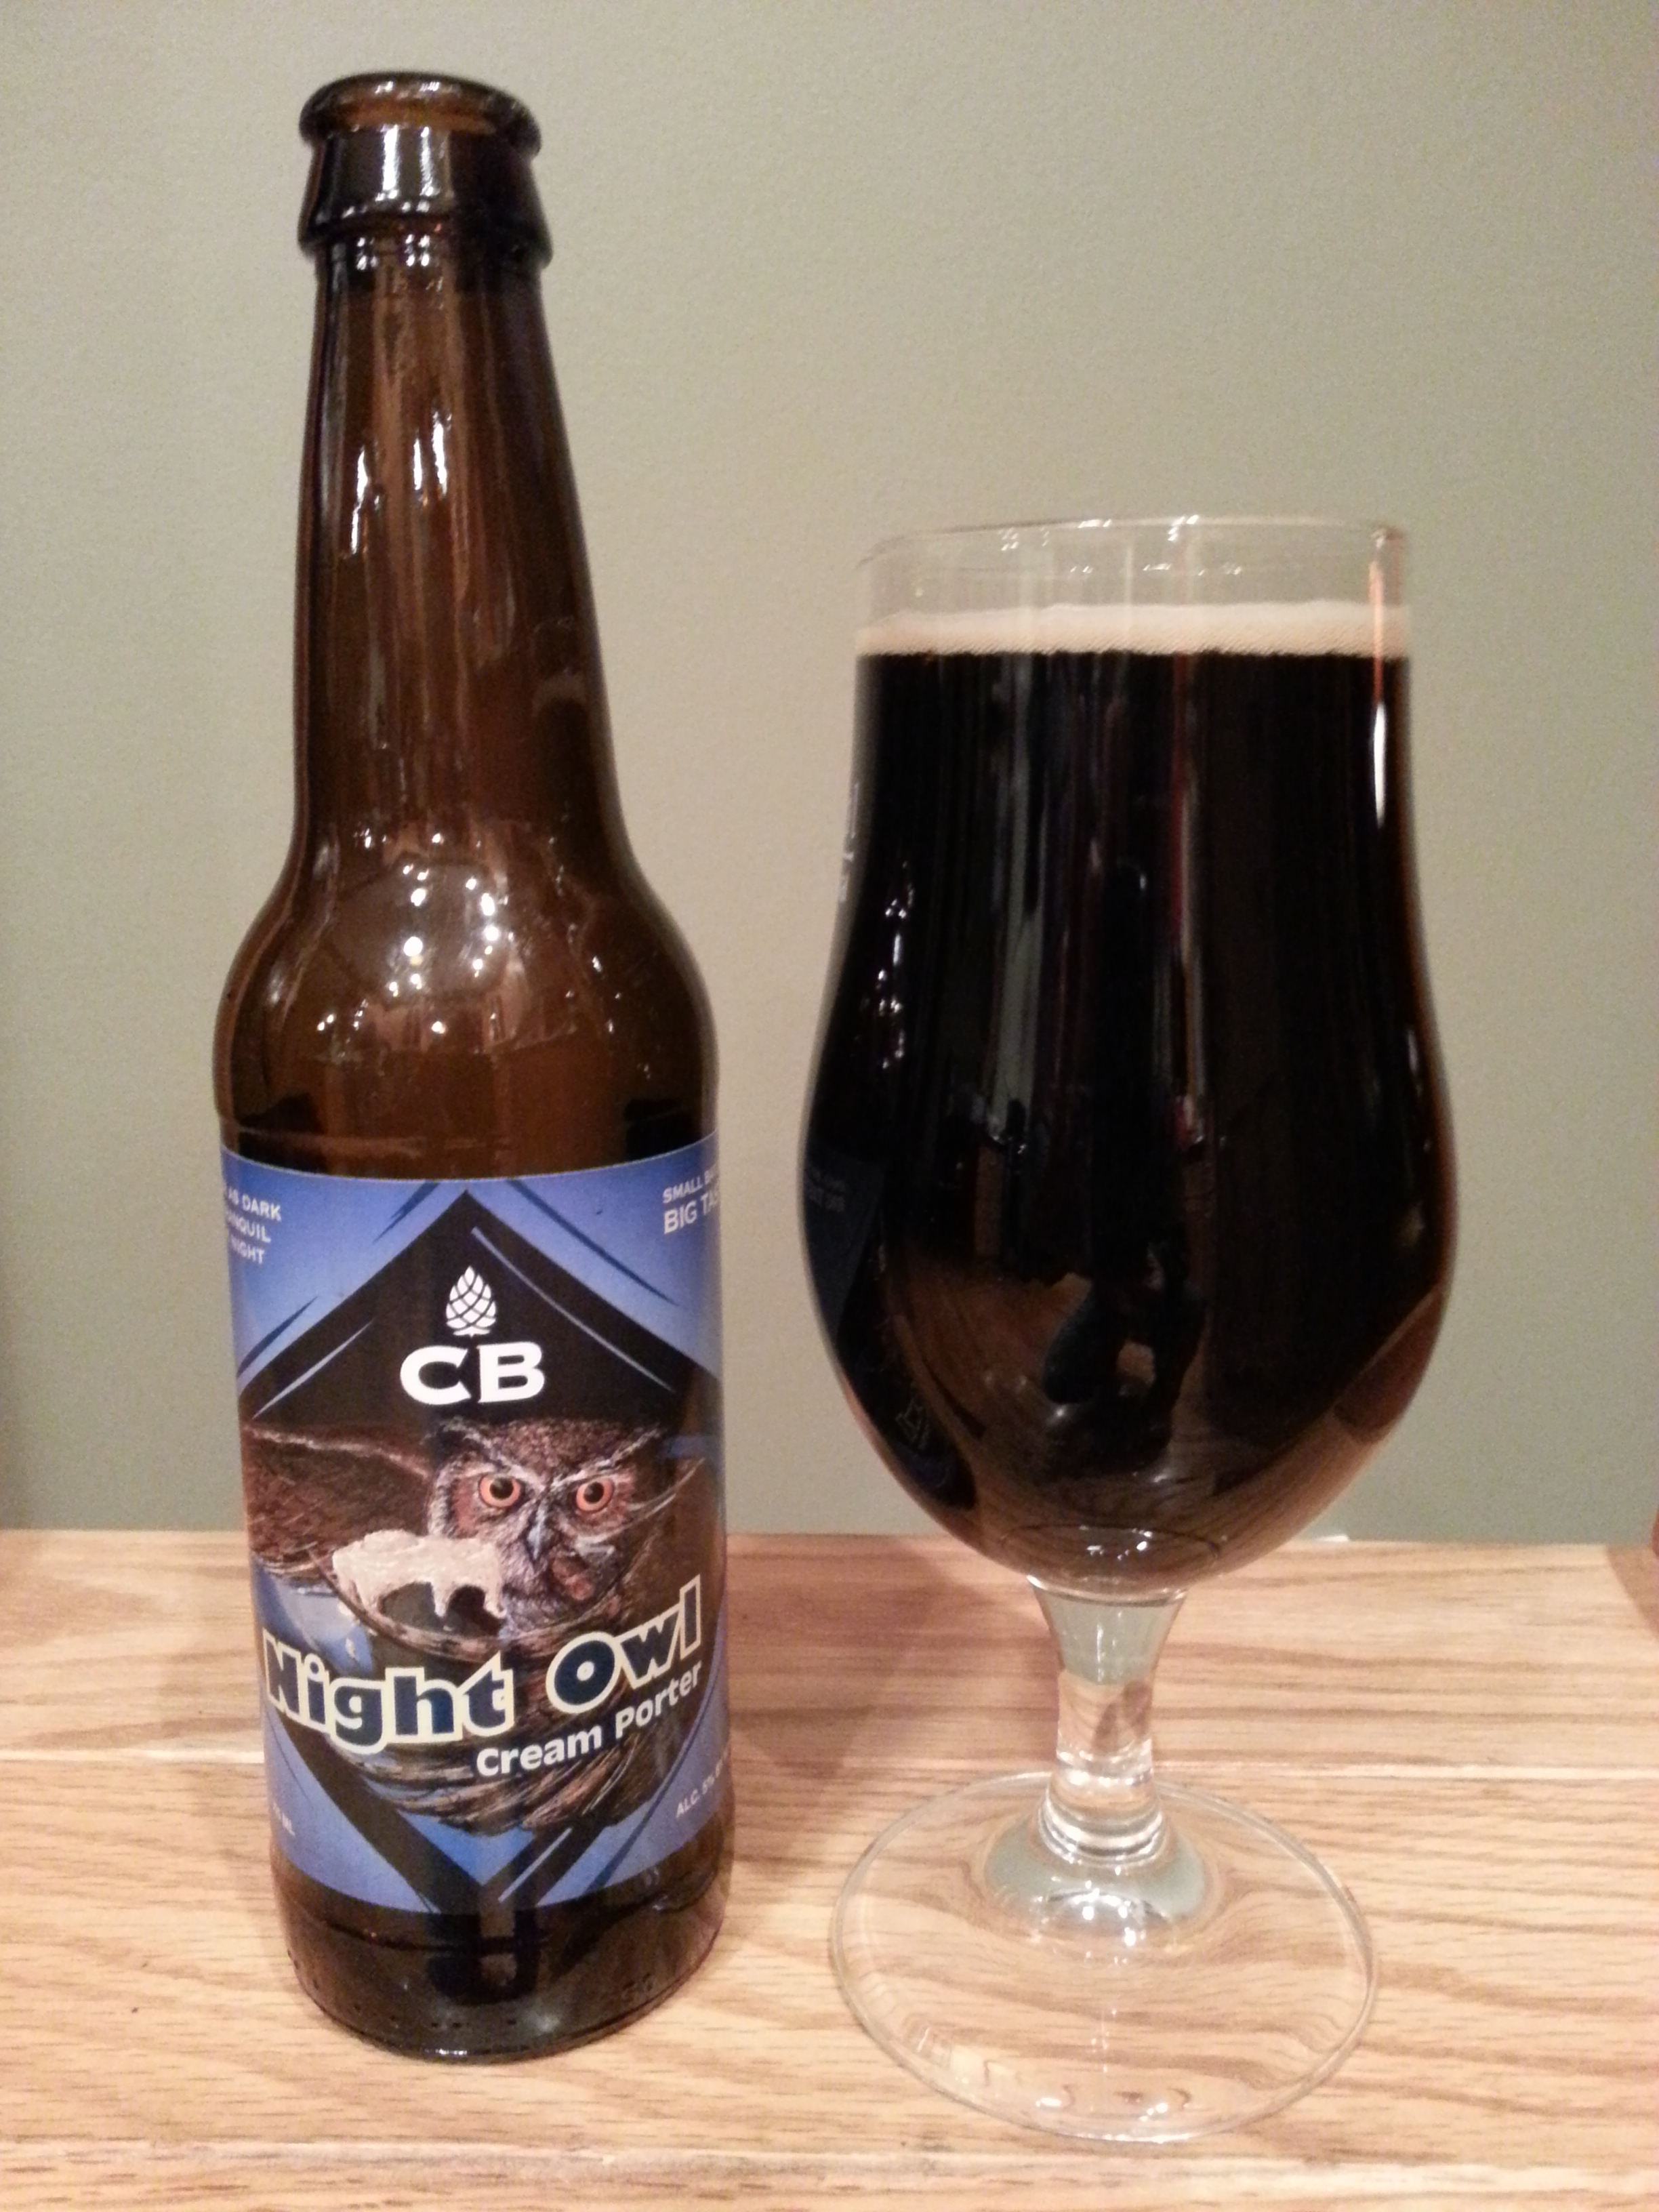 Custom Brewcrafters Night Owl Cream Porter